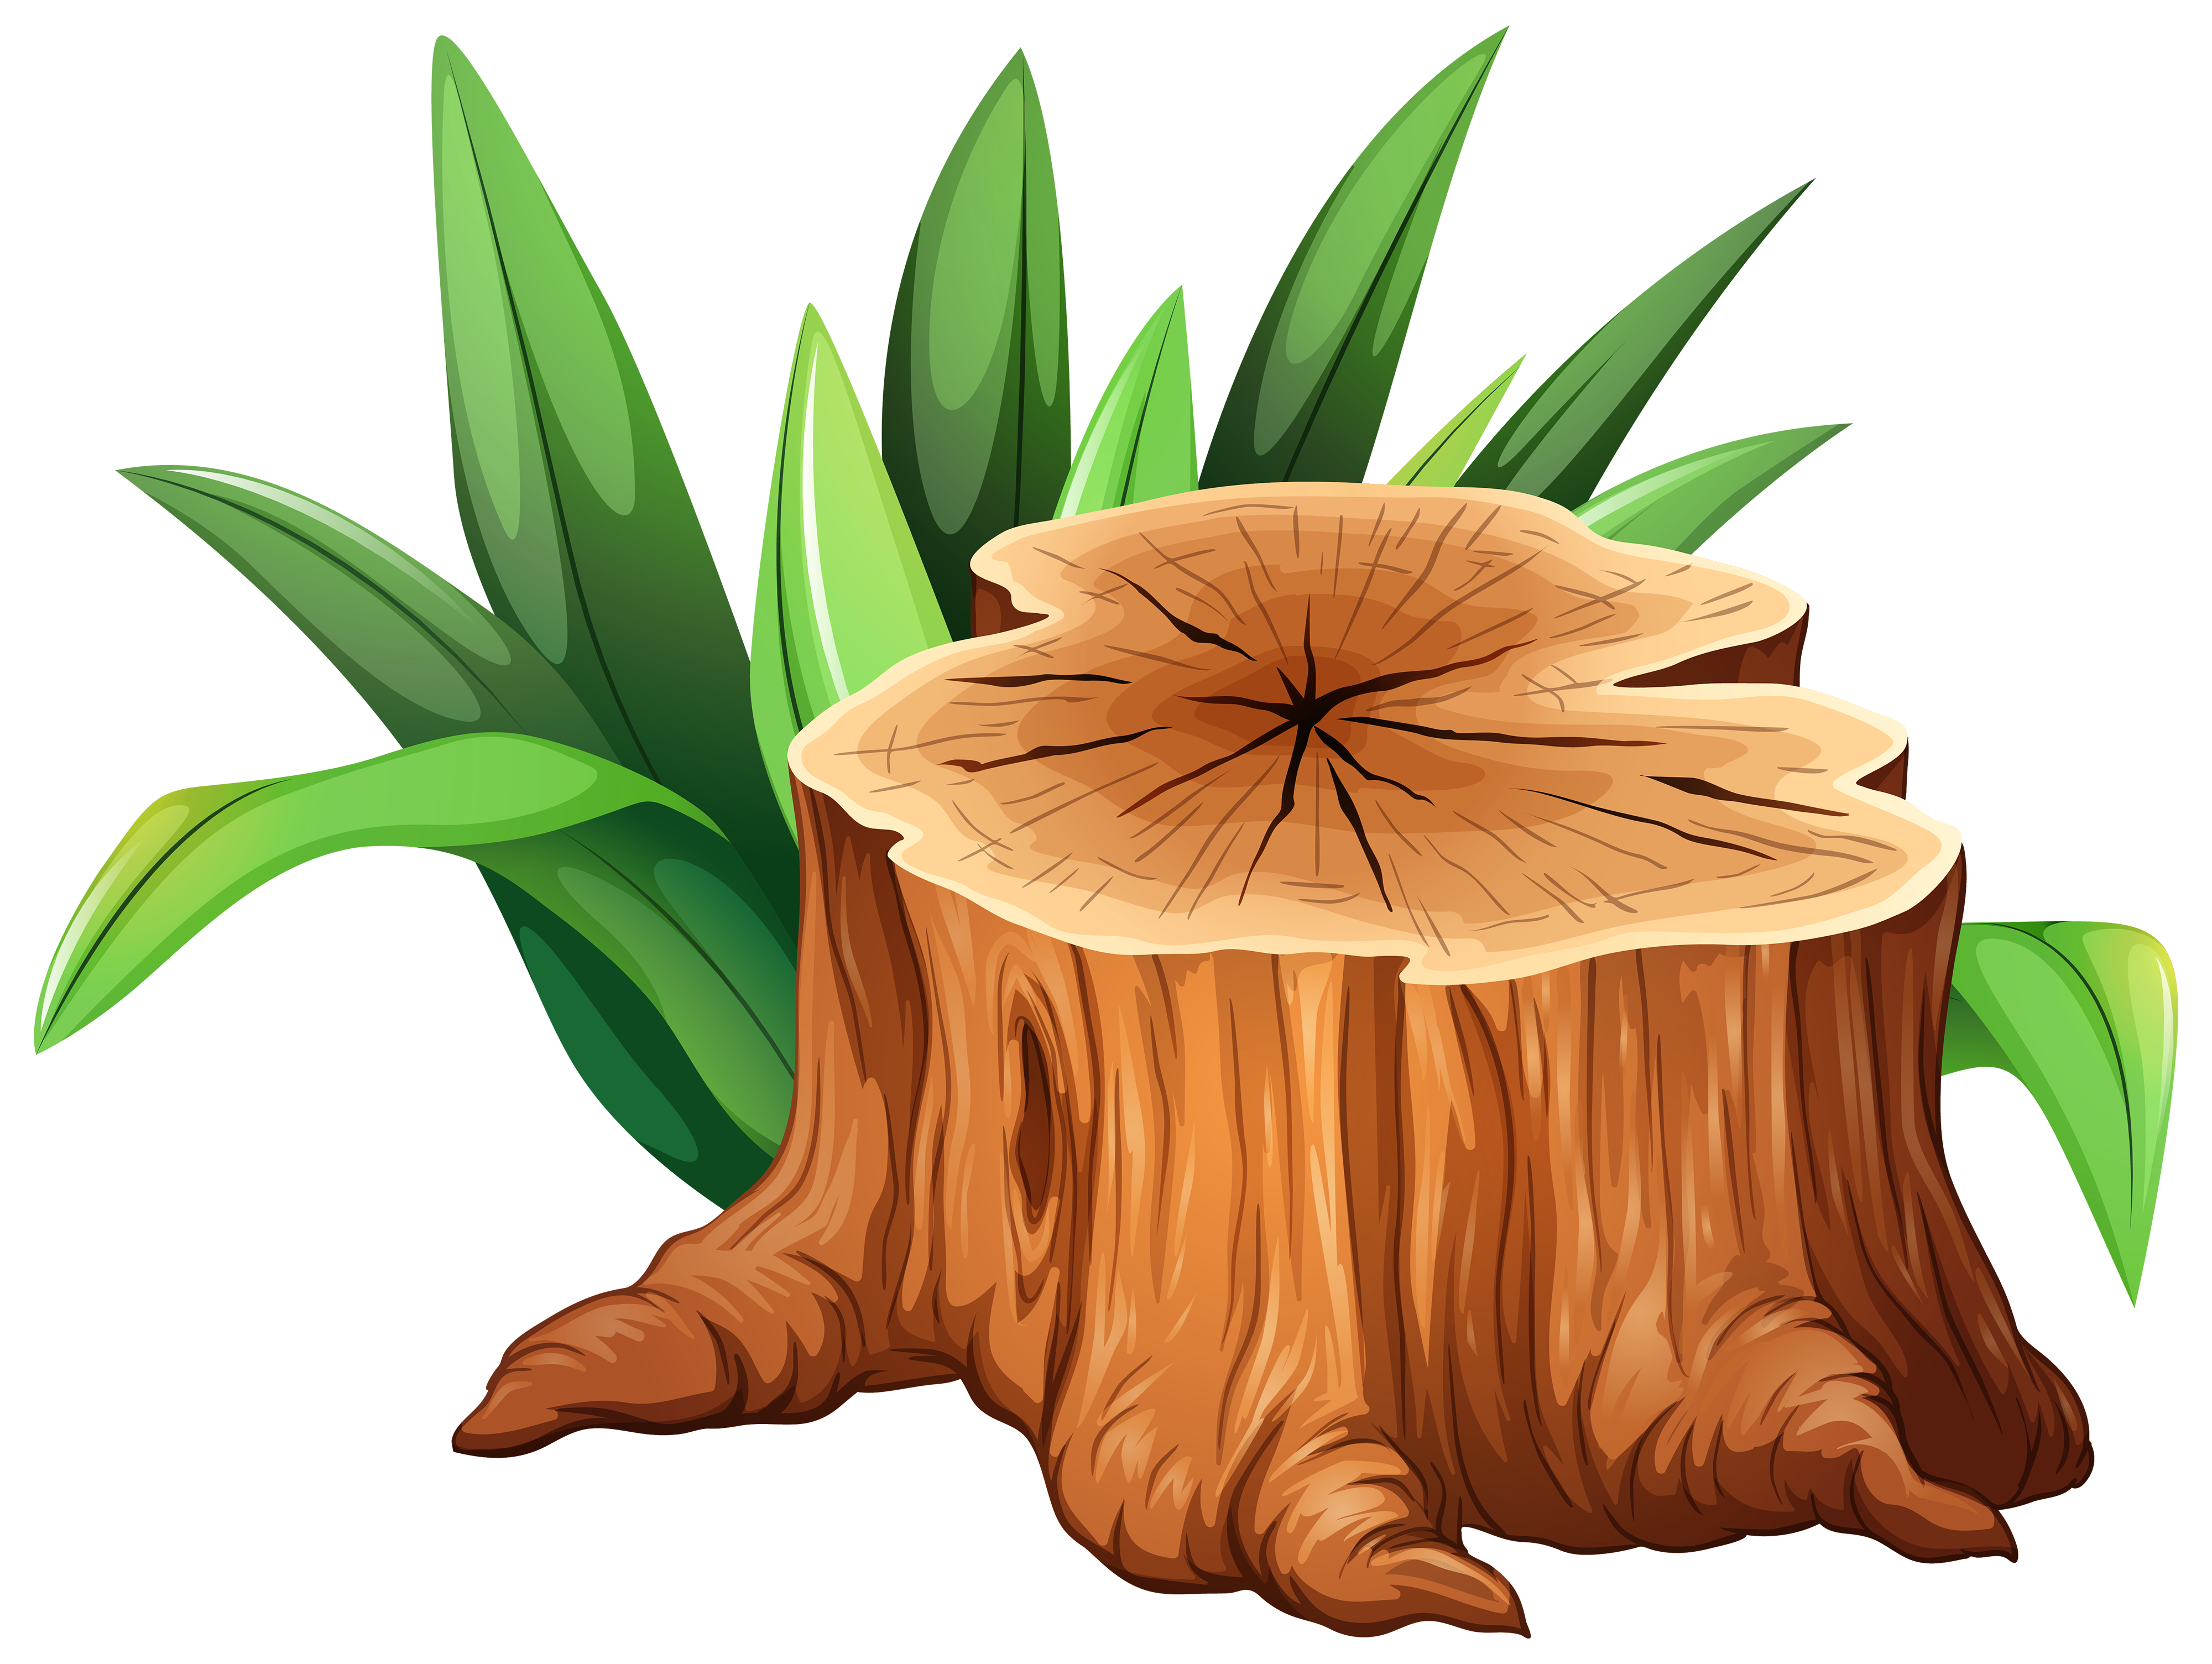 Stump clipart #3, Download drawings